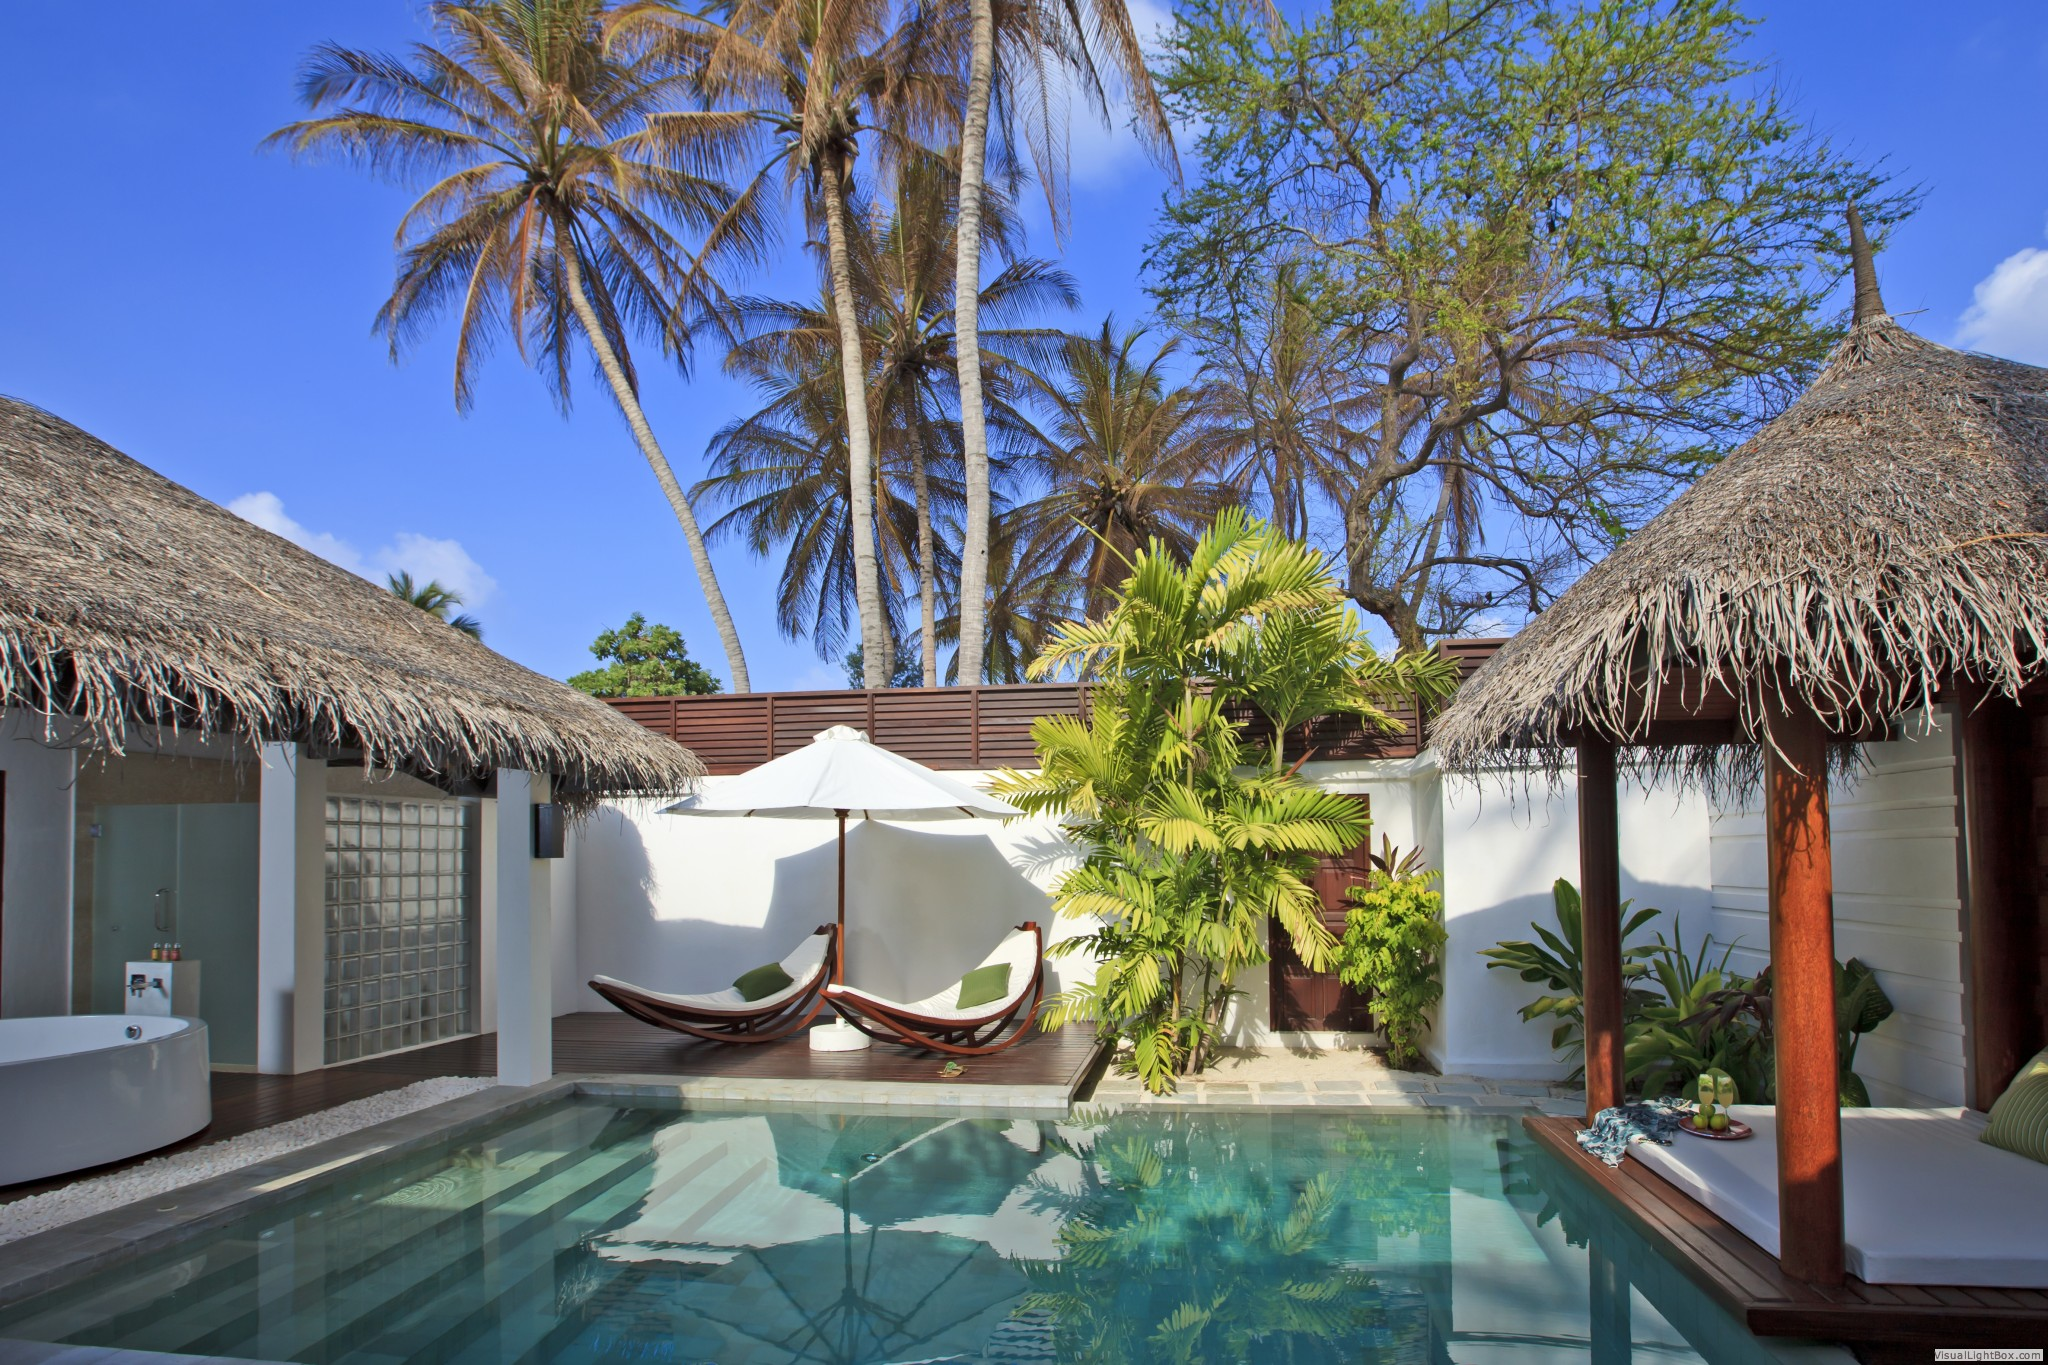 Luxury Pool Villas Maldives: Velassaru Maldives, Luxury Hotel In Maldives